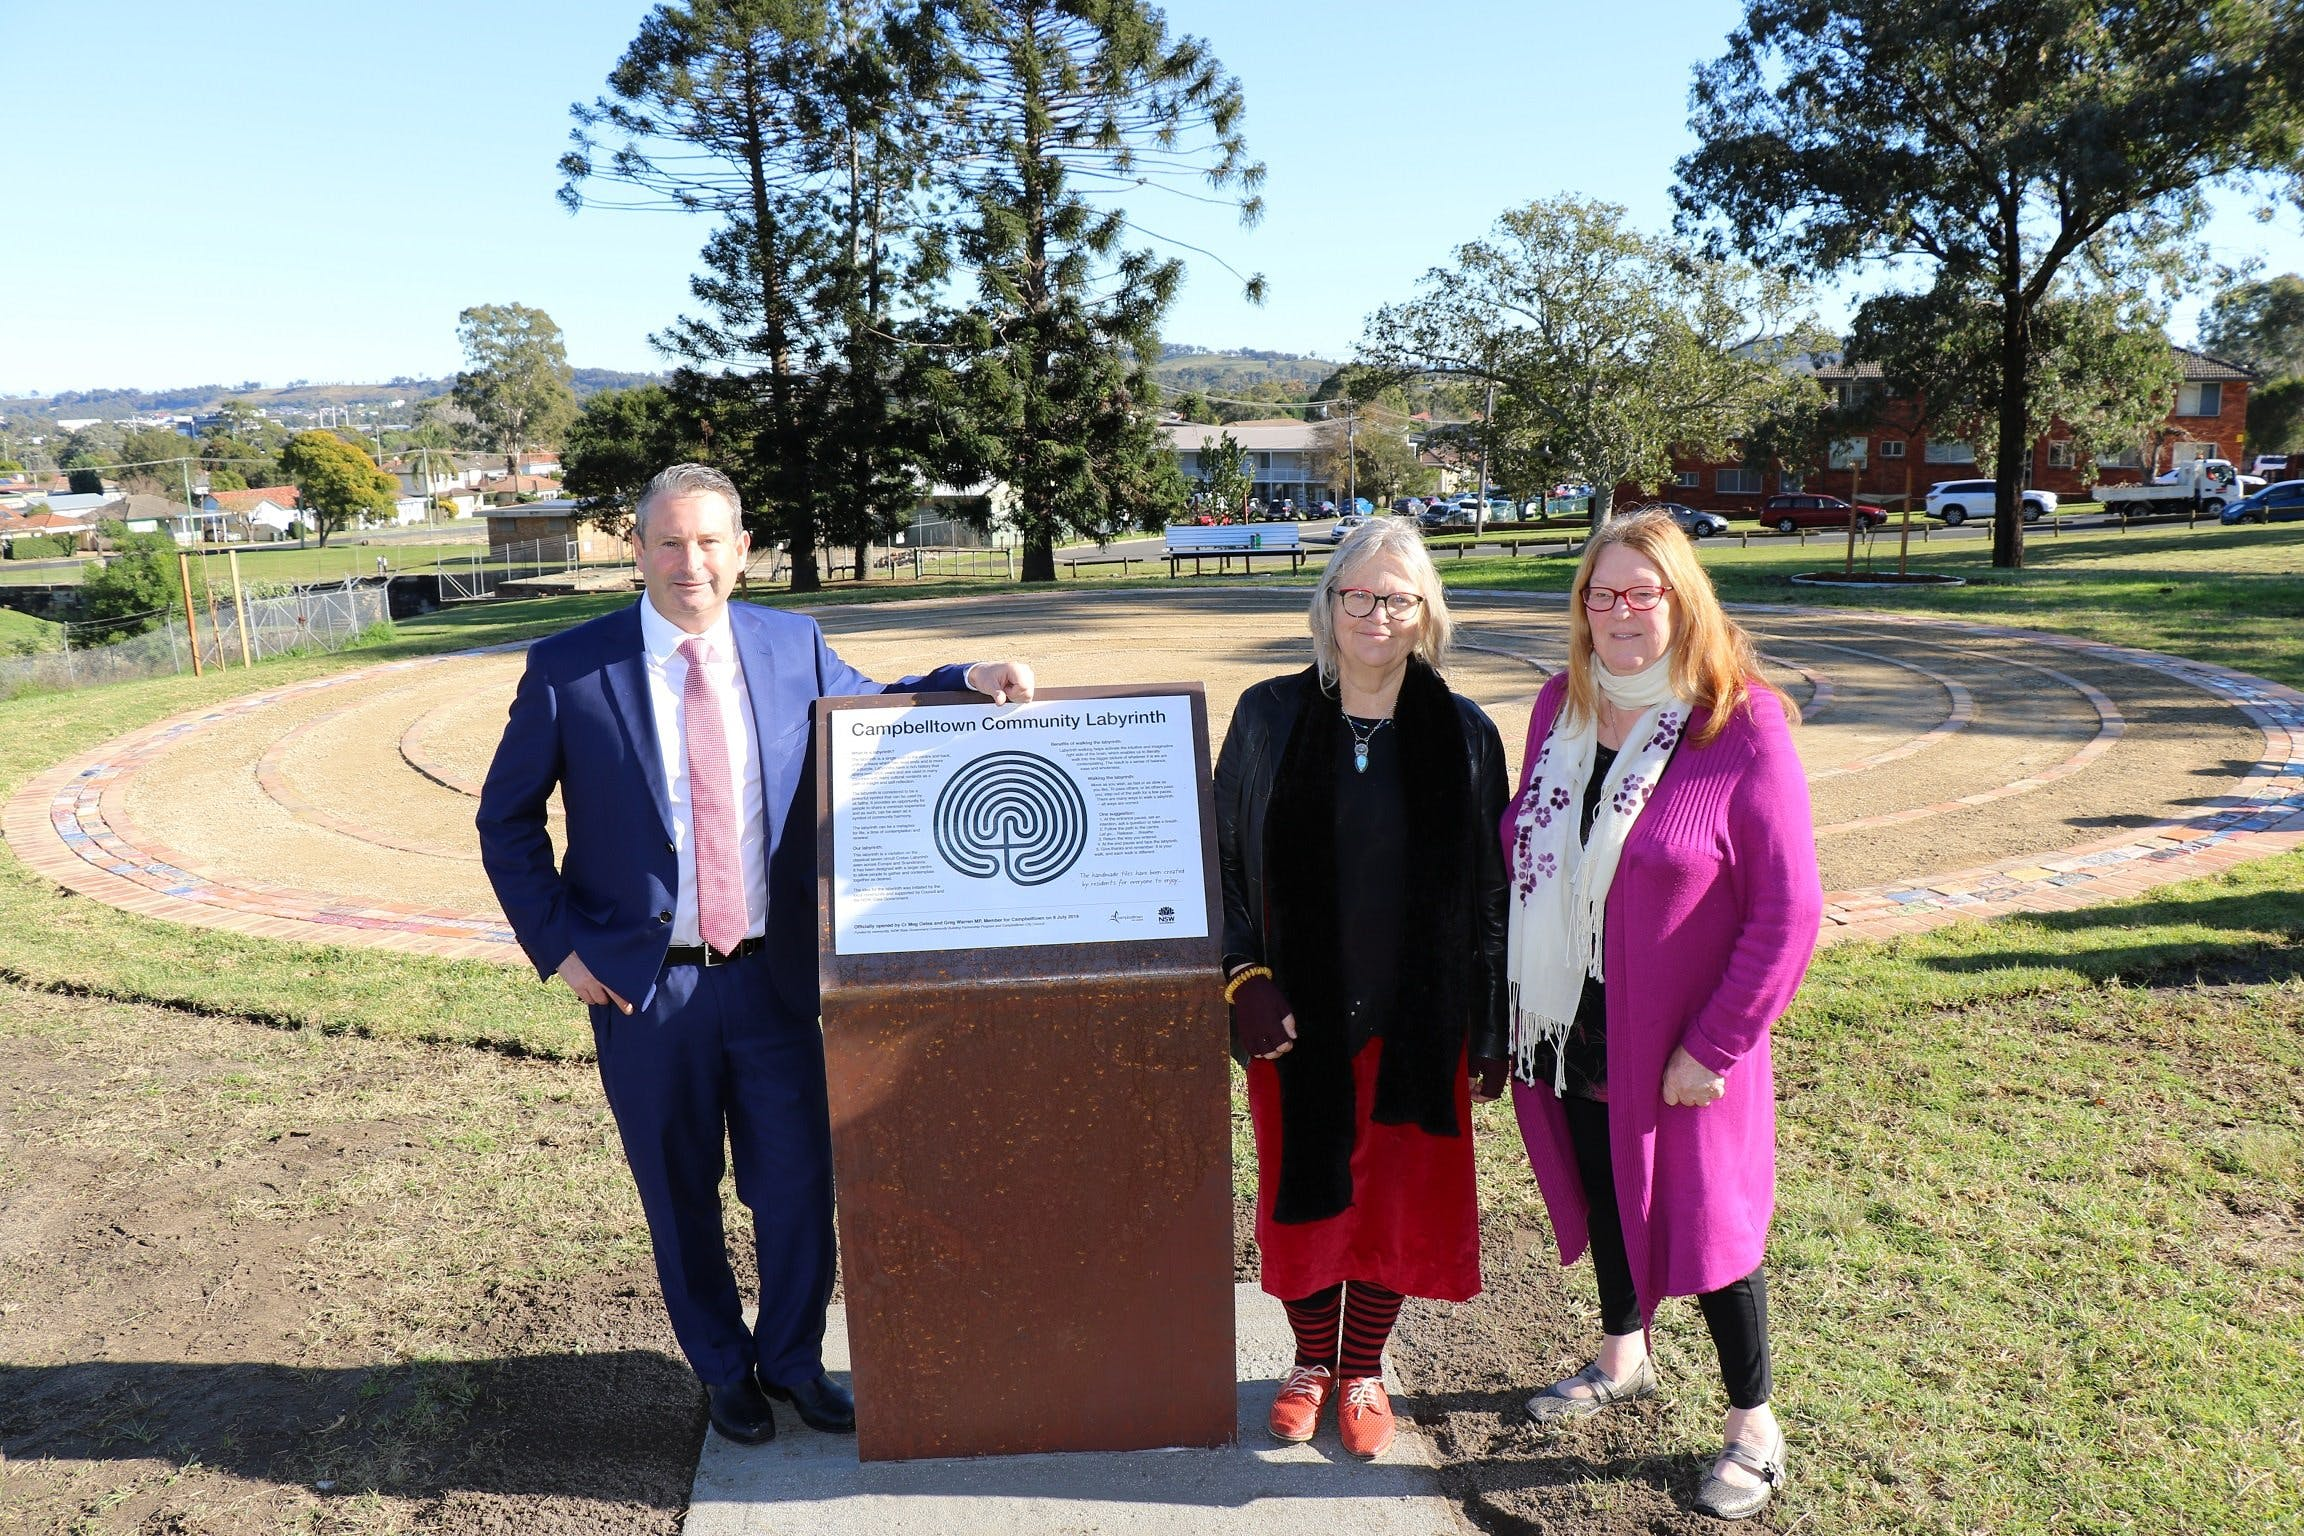 Campbelltown Community Labyrinth - Redcliffe Tourism